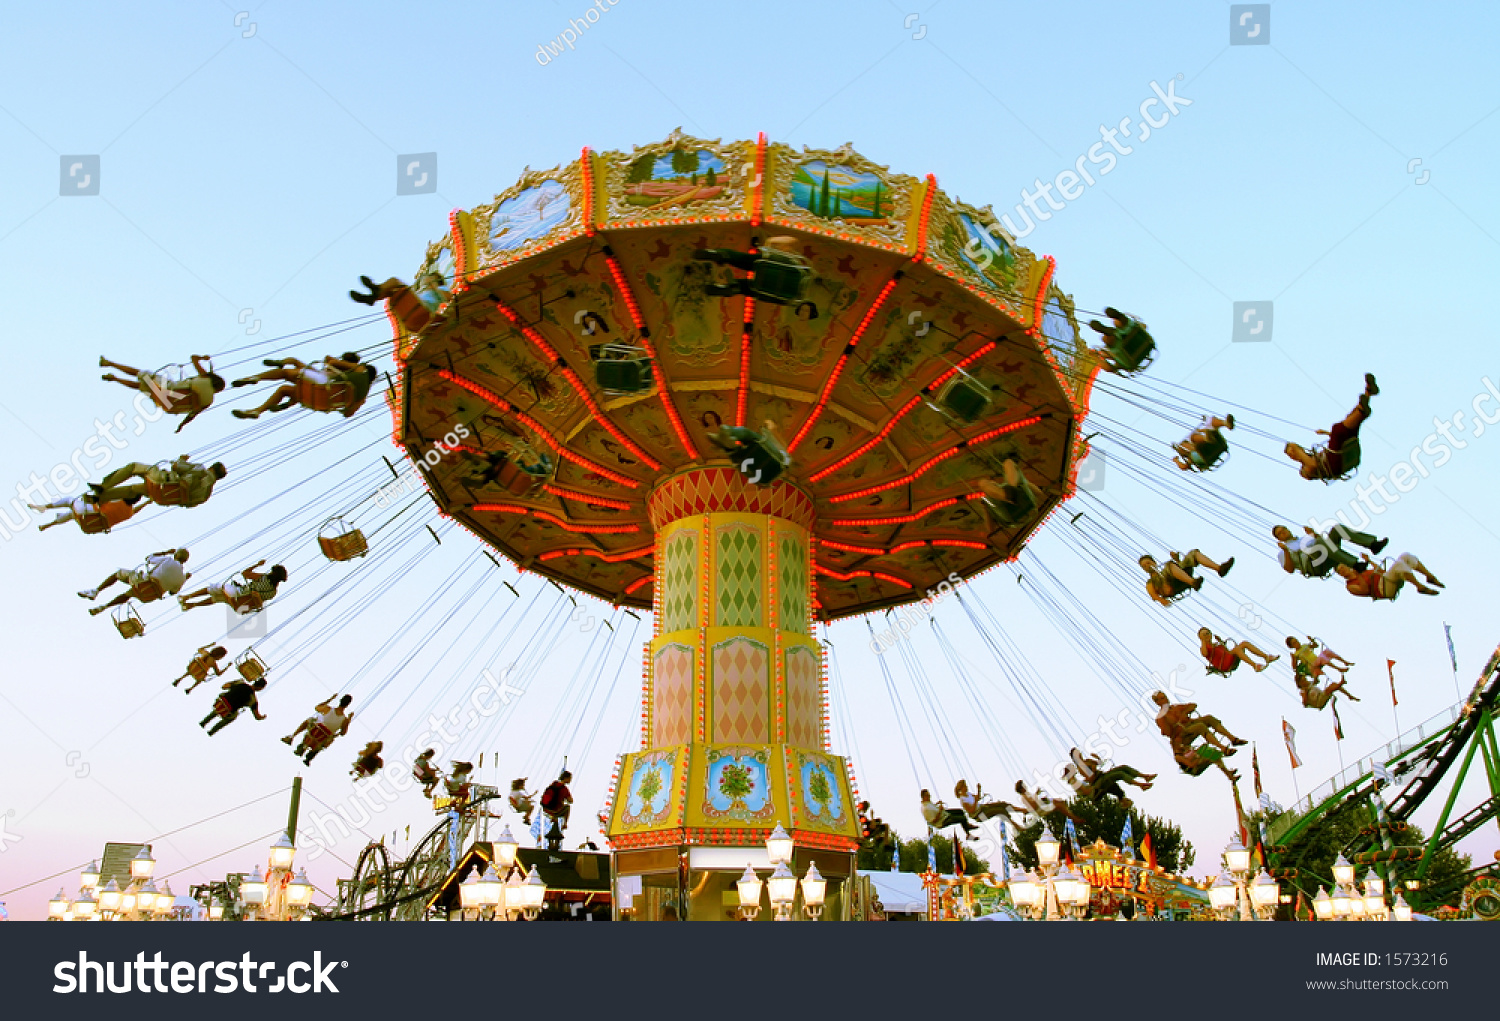 Have Ride On Merrygoround Dawn Stock Photo (Edit Now) 1573216 ...